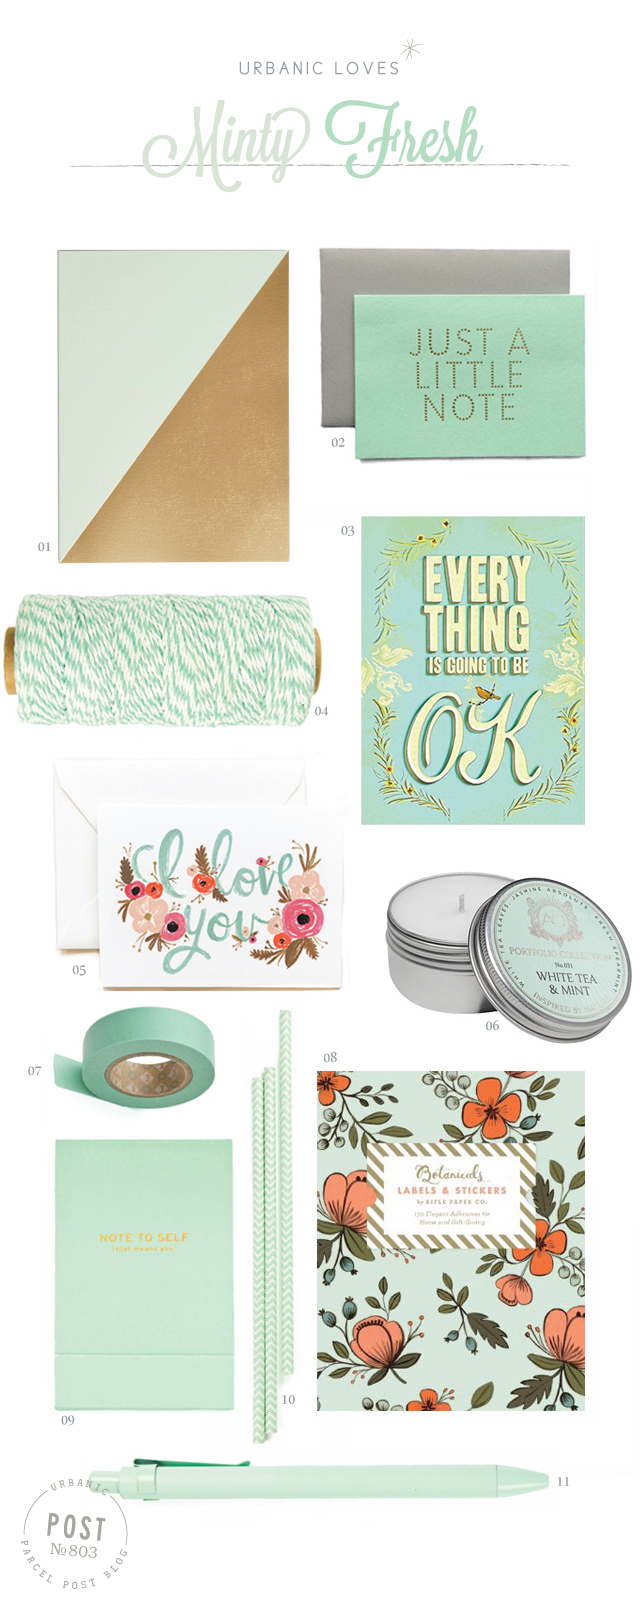 Urbanic loves : Mint